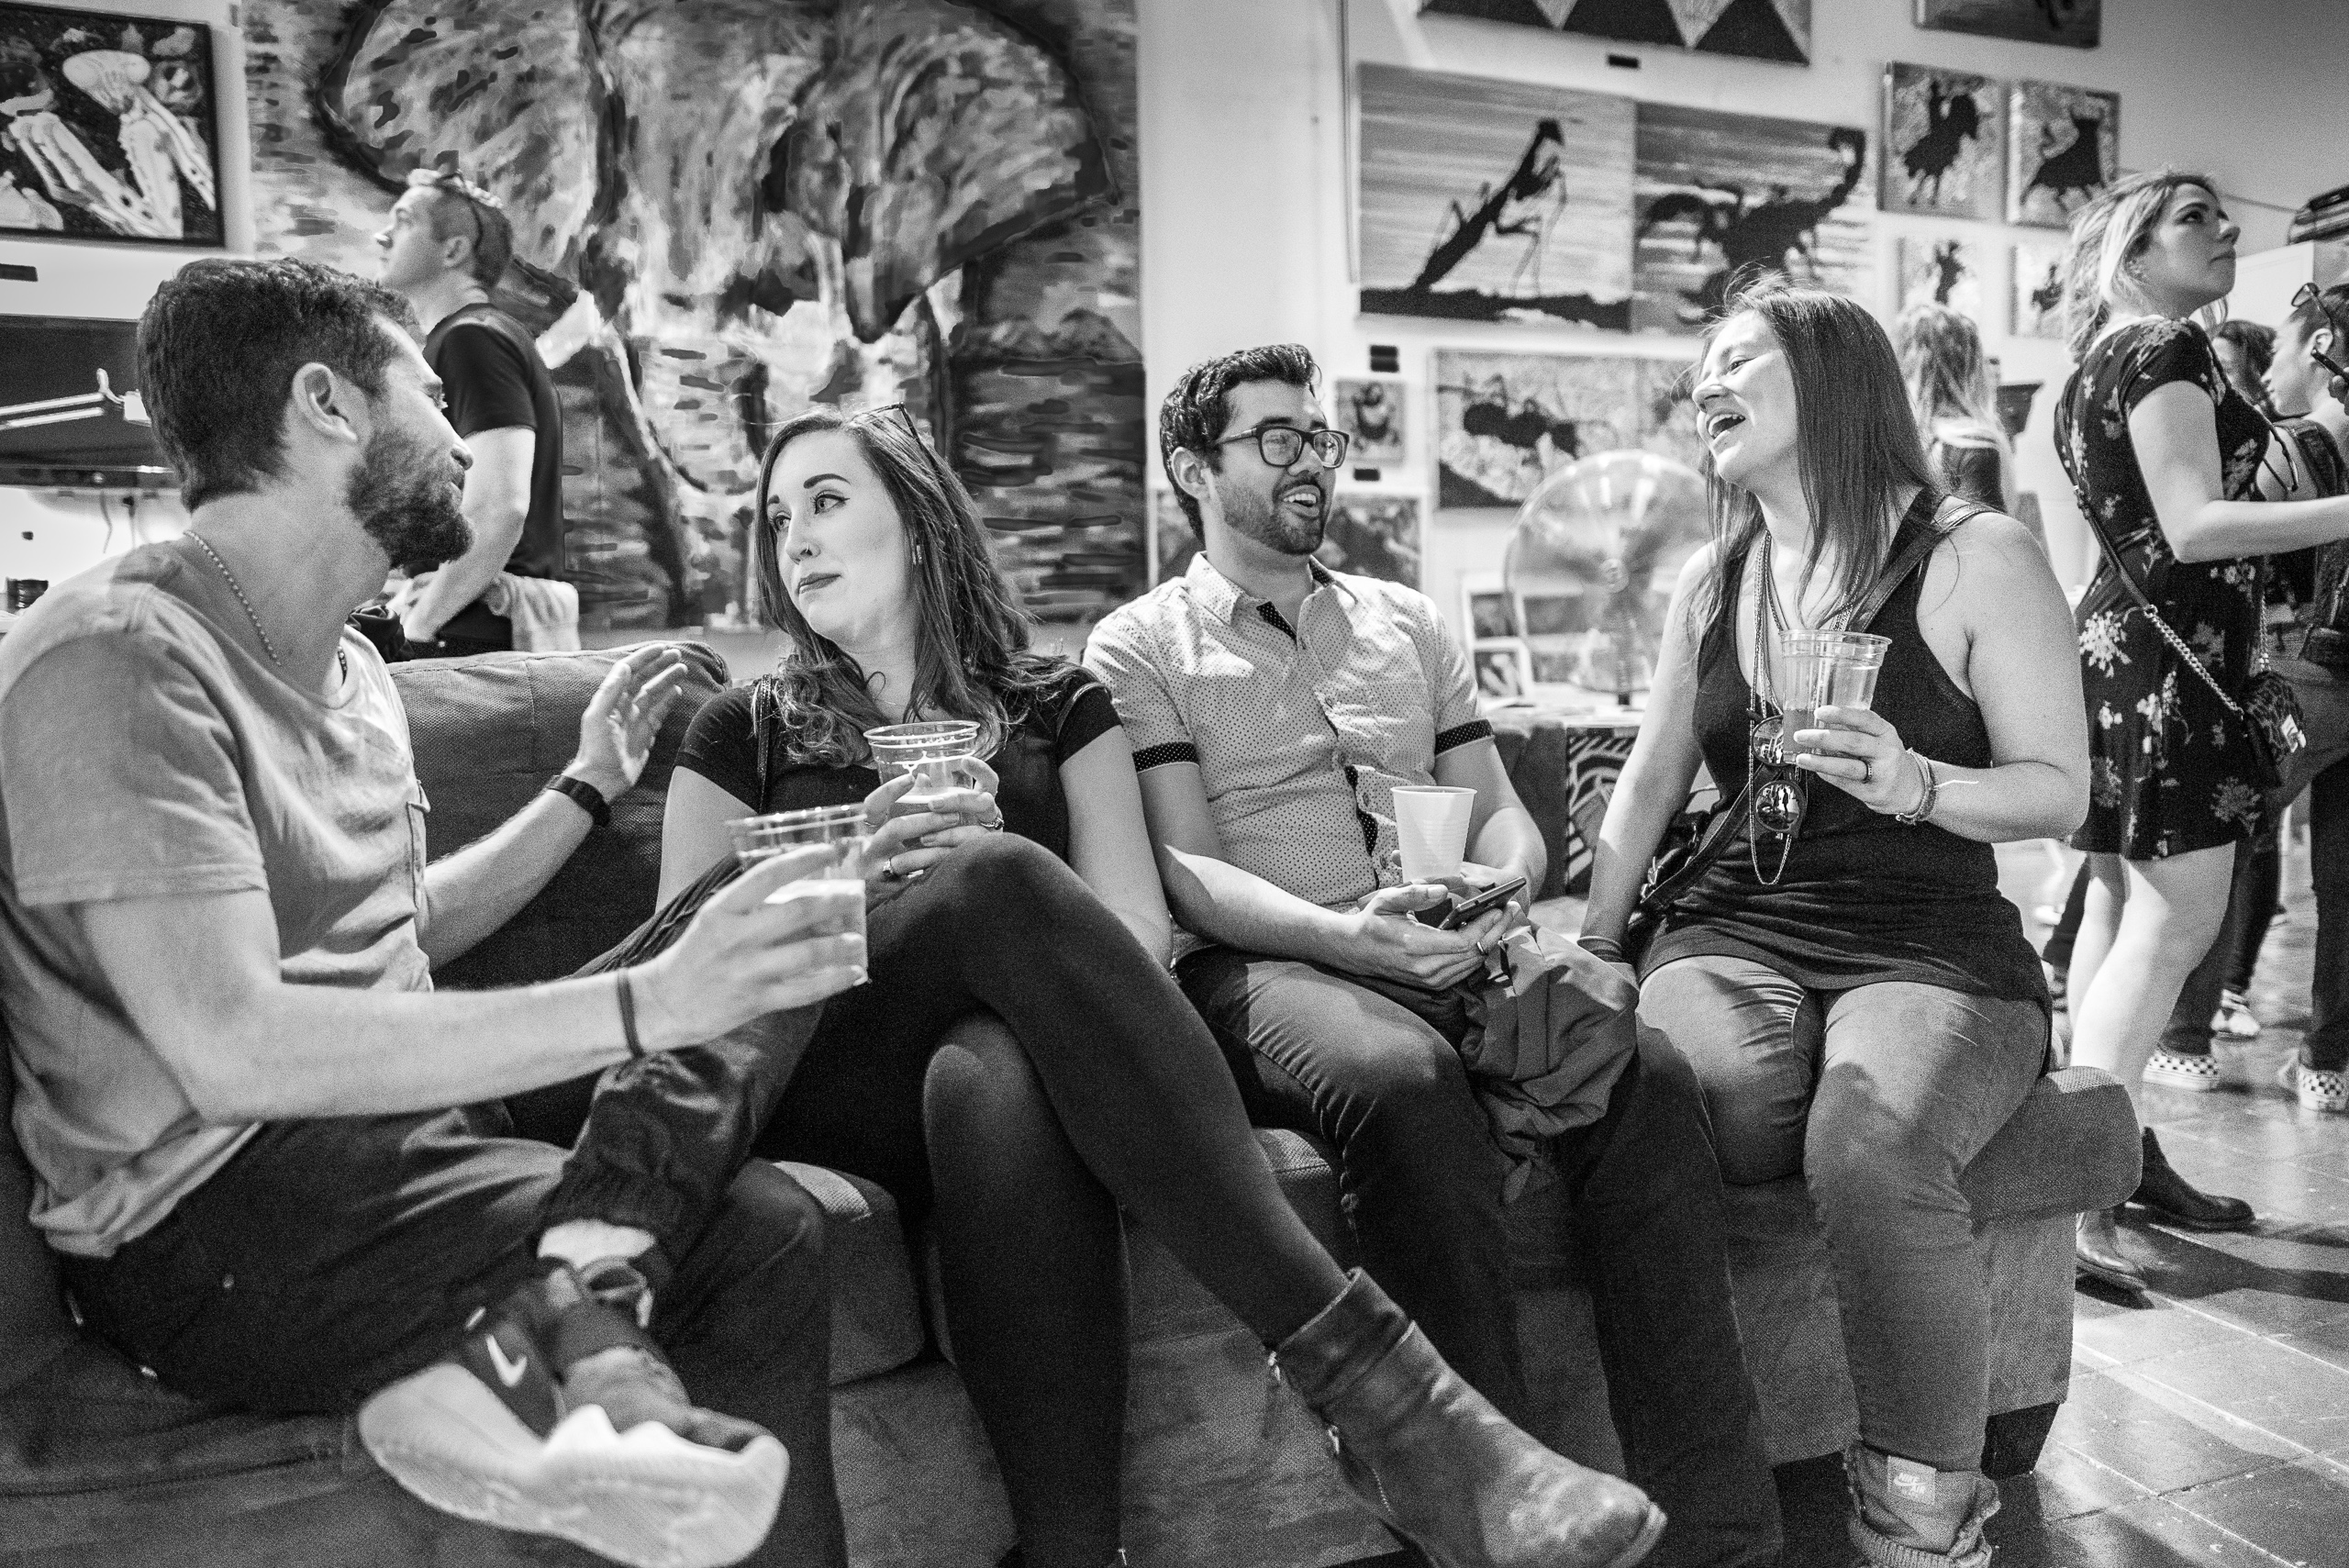 4 people sit on a couch, hold drinks, and converse, in an artist's loft at the Brewery Arts Complex in Downtown Los Angeles